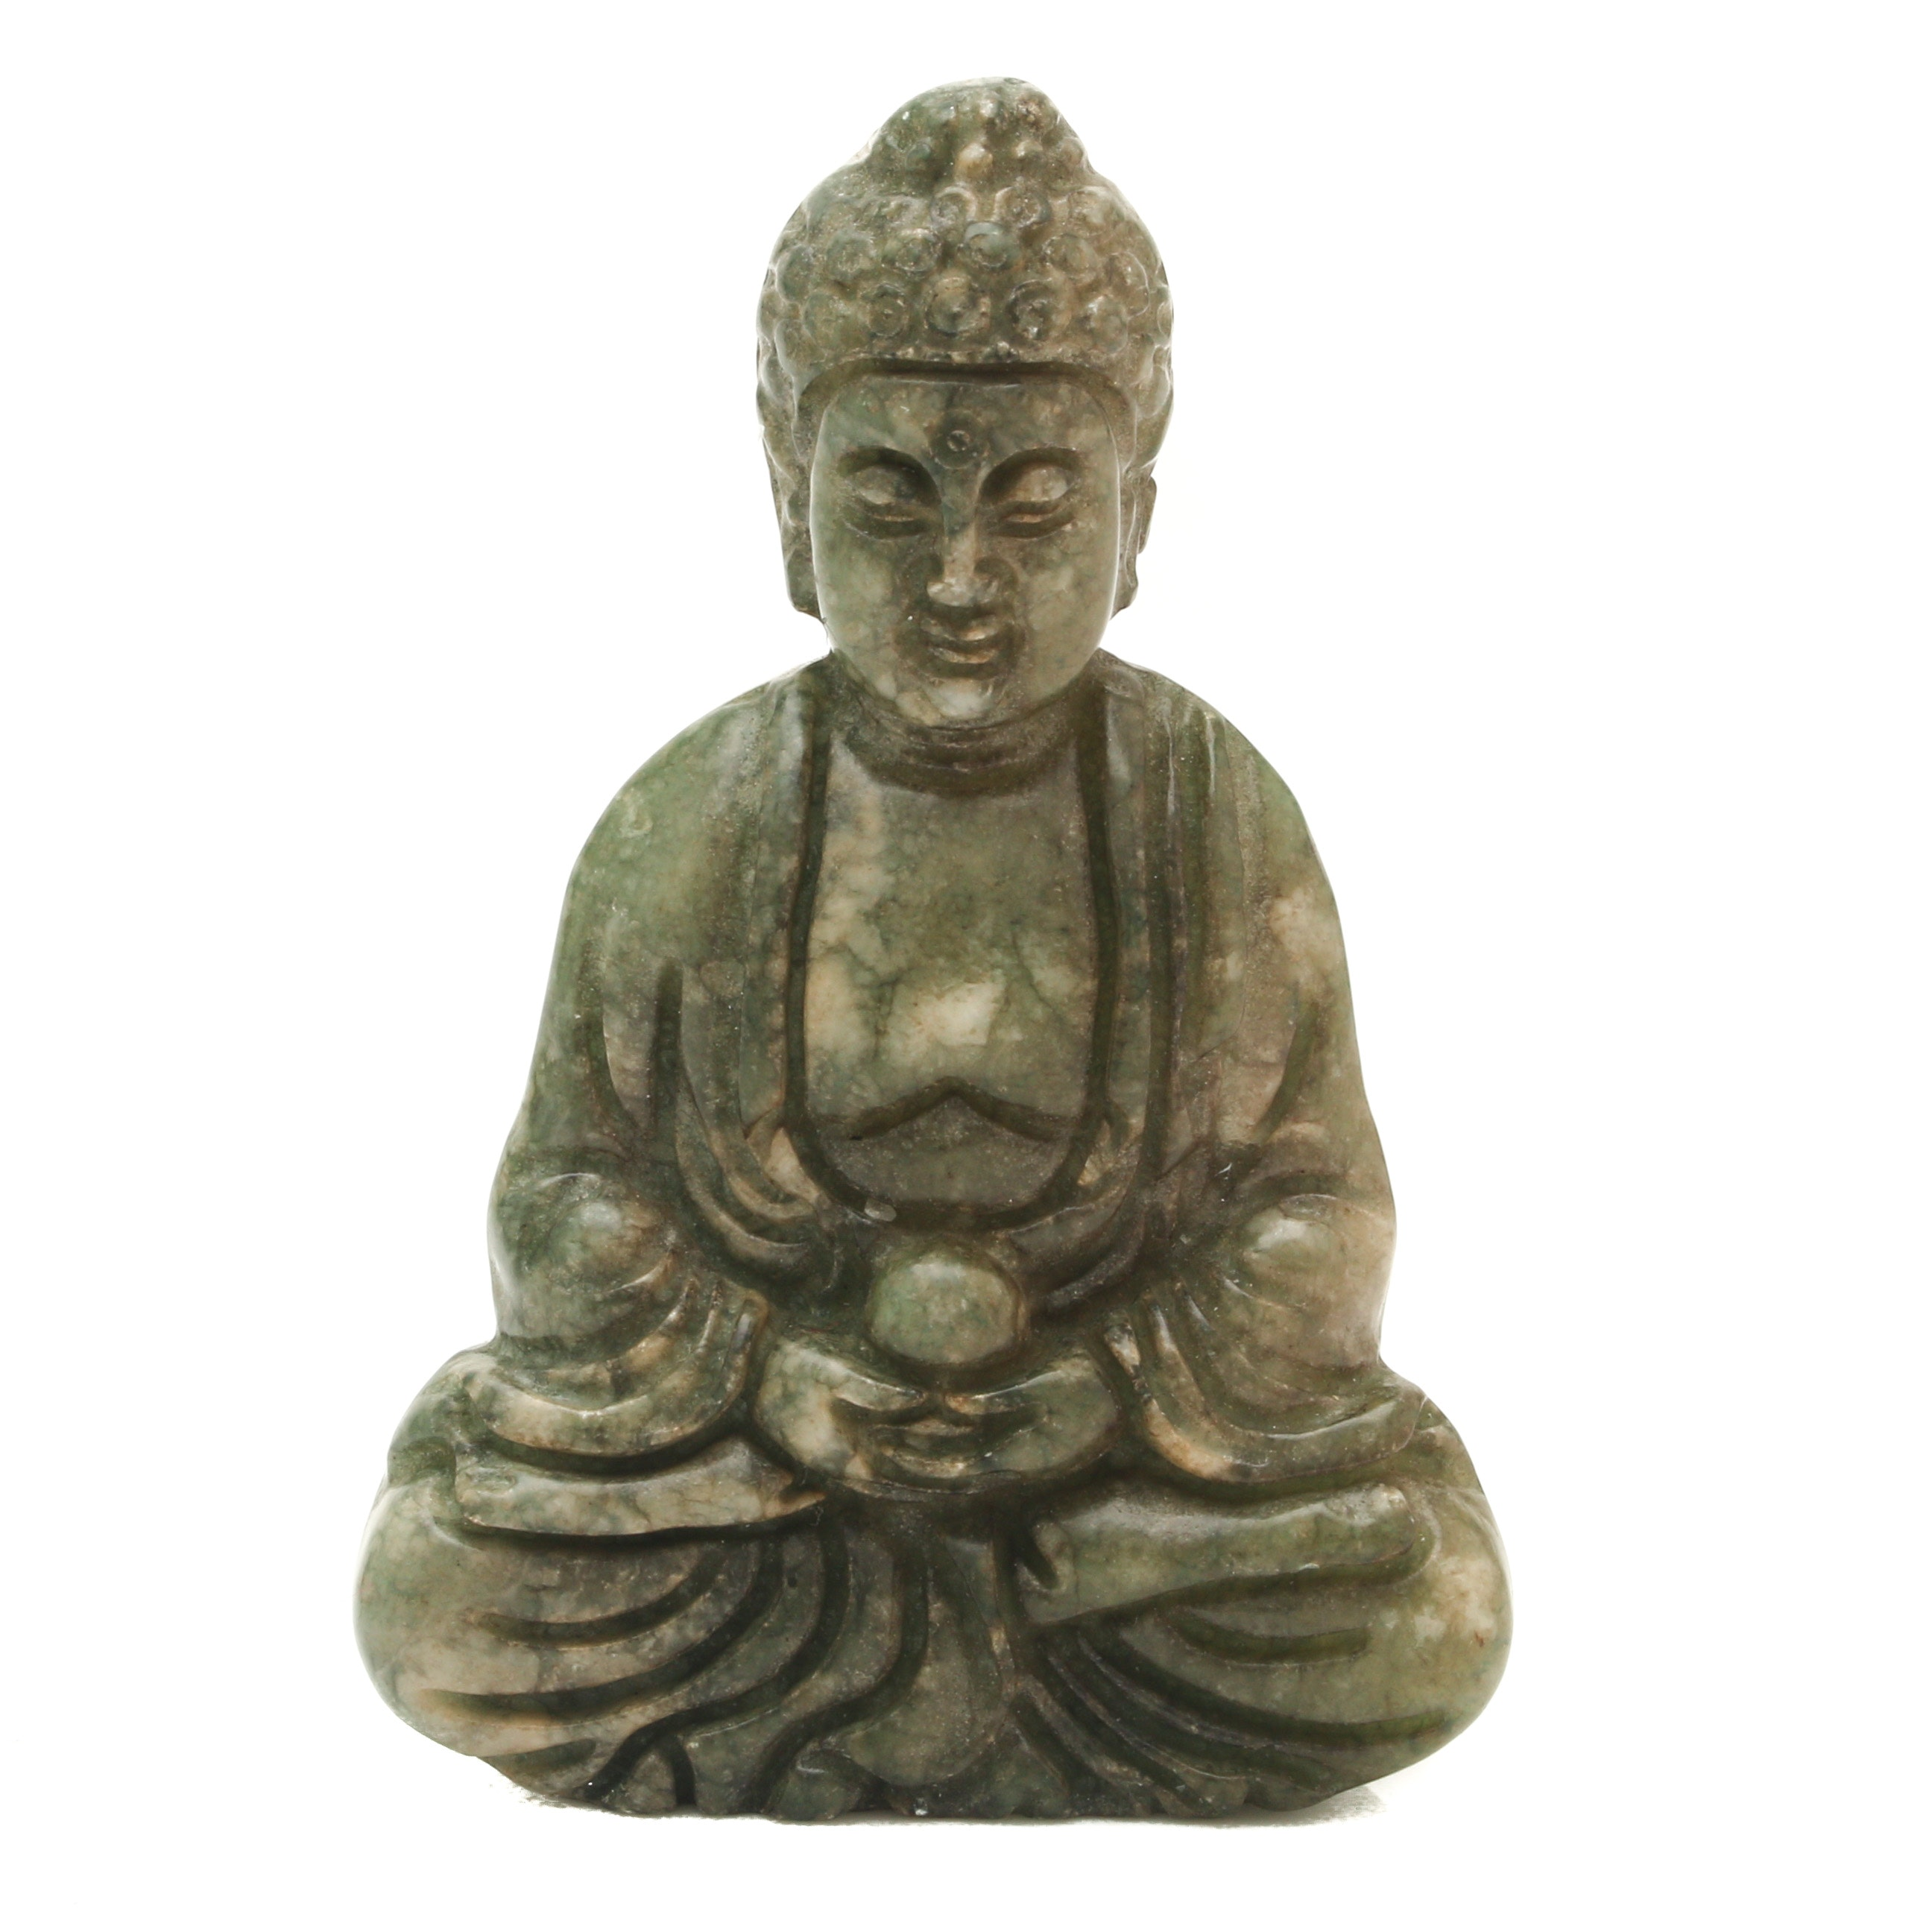 Dyed Green Calcite Buddha Statuette